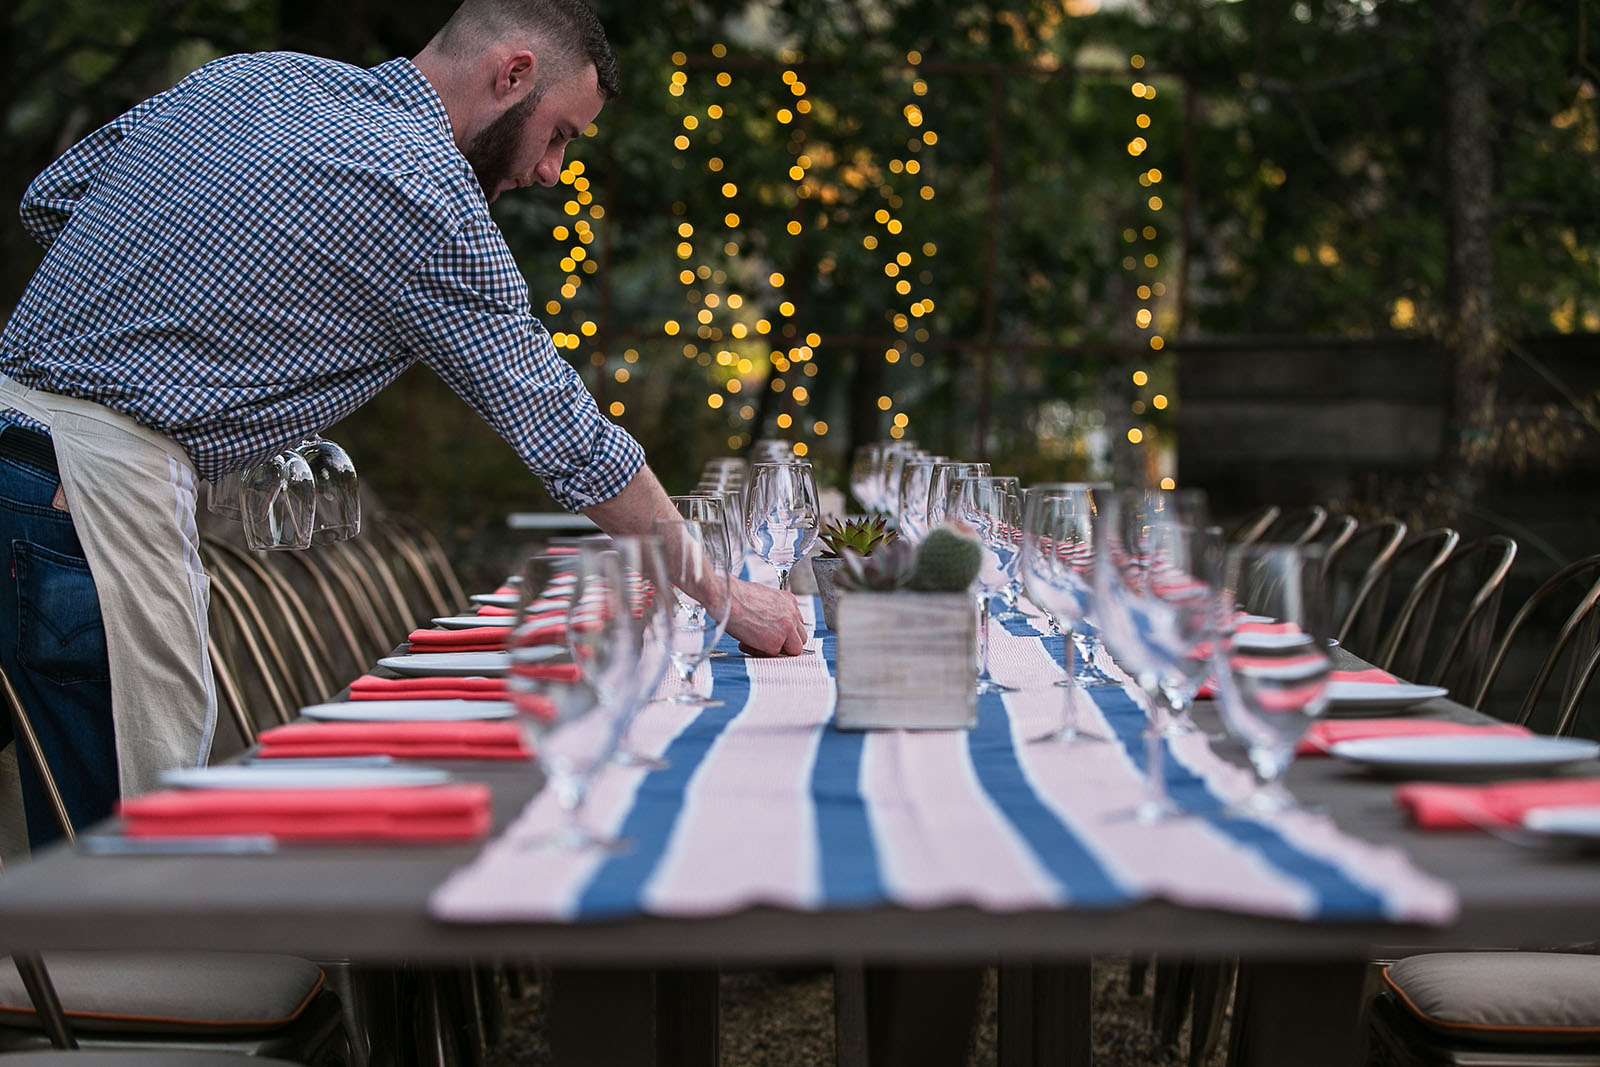 photo-of-man-setting-a-table-by-kristin-dokoza